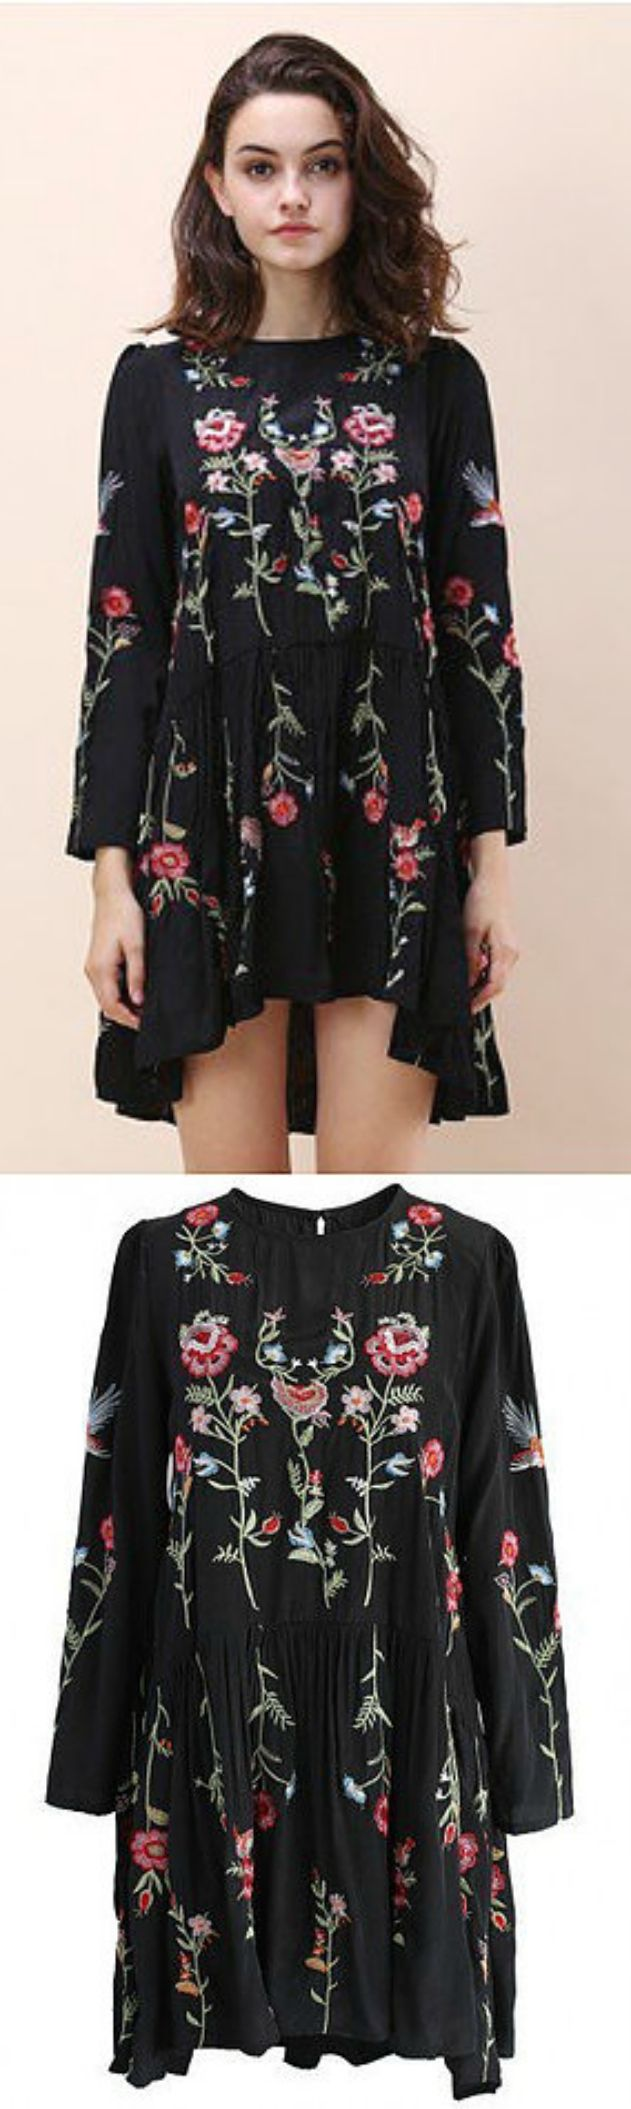 $49 - A Black Embroidery Dress is now available at Pasaboho. ❤️ This beautiful dress exhibit brilliant colours with beautiful embroidered flowers. :: boho fashion :: gypsy style :: hippie chic :: boho chic :: outfit ideas :: boho clothing :: free spirit :: fashion trend :: embroidered :: flowers :: floral :: lace :: summer :: fabulous :: love :: street style :: fashion style :: boho style :: bohemian :: modern vintage :: ethnic tribal :: boho bags :: embroidery dress :: skirt :: cardigans